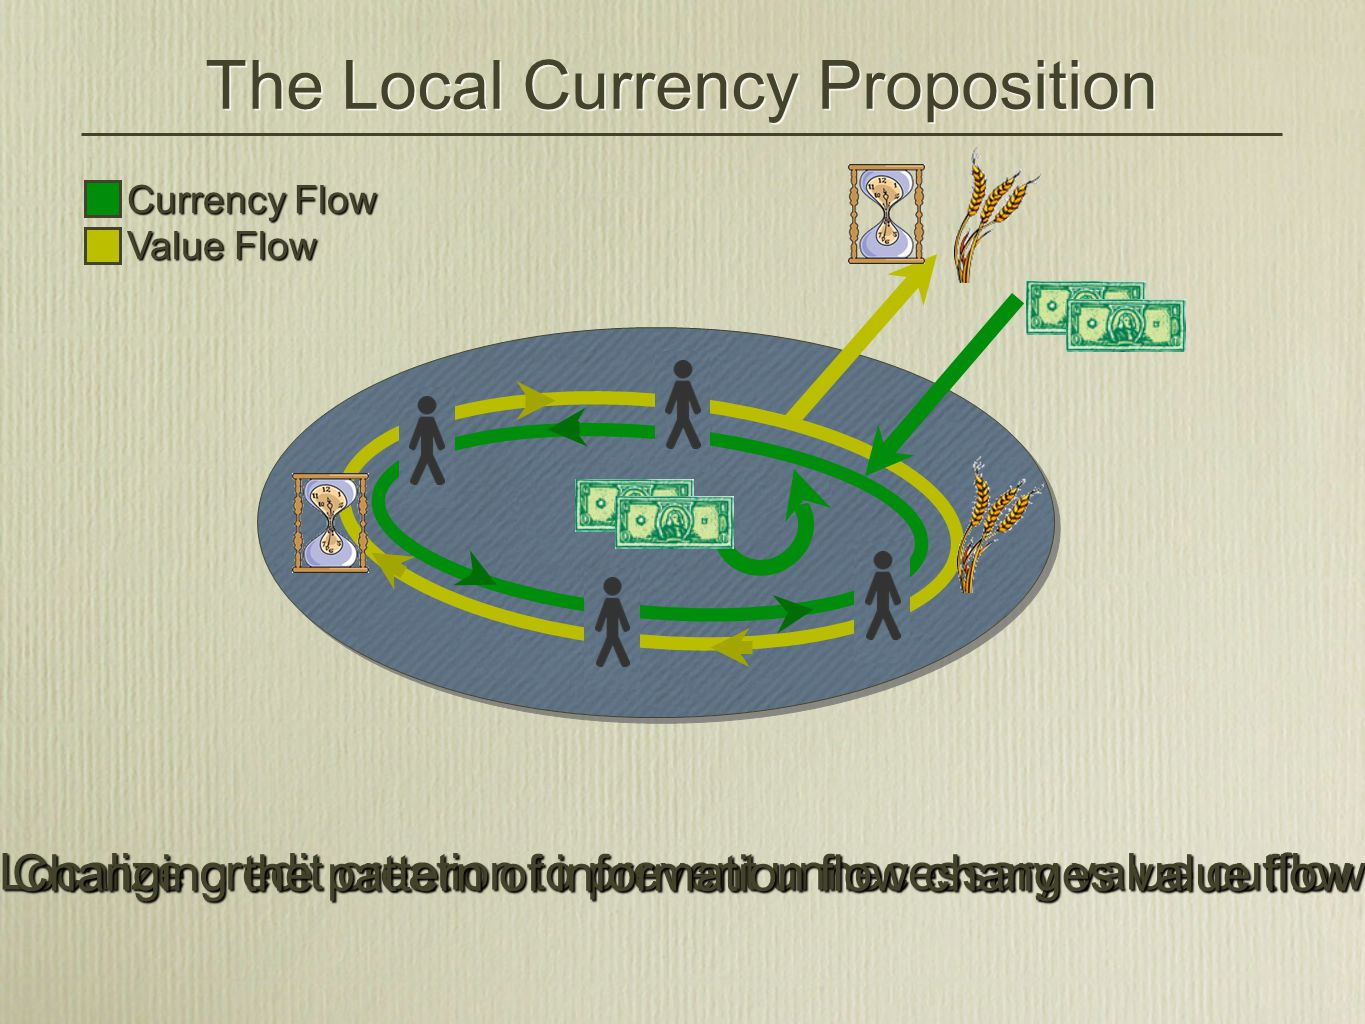 Currency Flow The Local Currency Proposition Localize credit creation to prevent unnecessary value outflow Value Flow Changing the pattern of information flow changes value flow